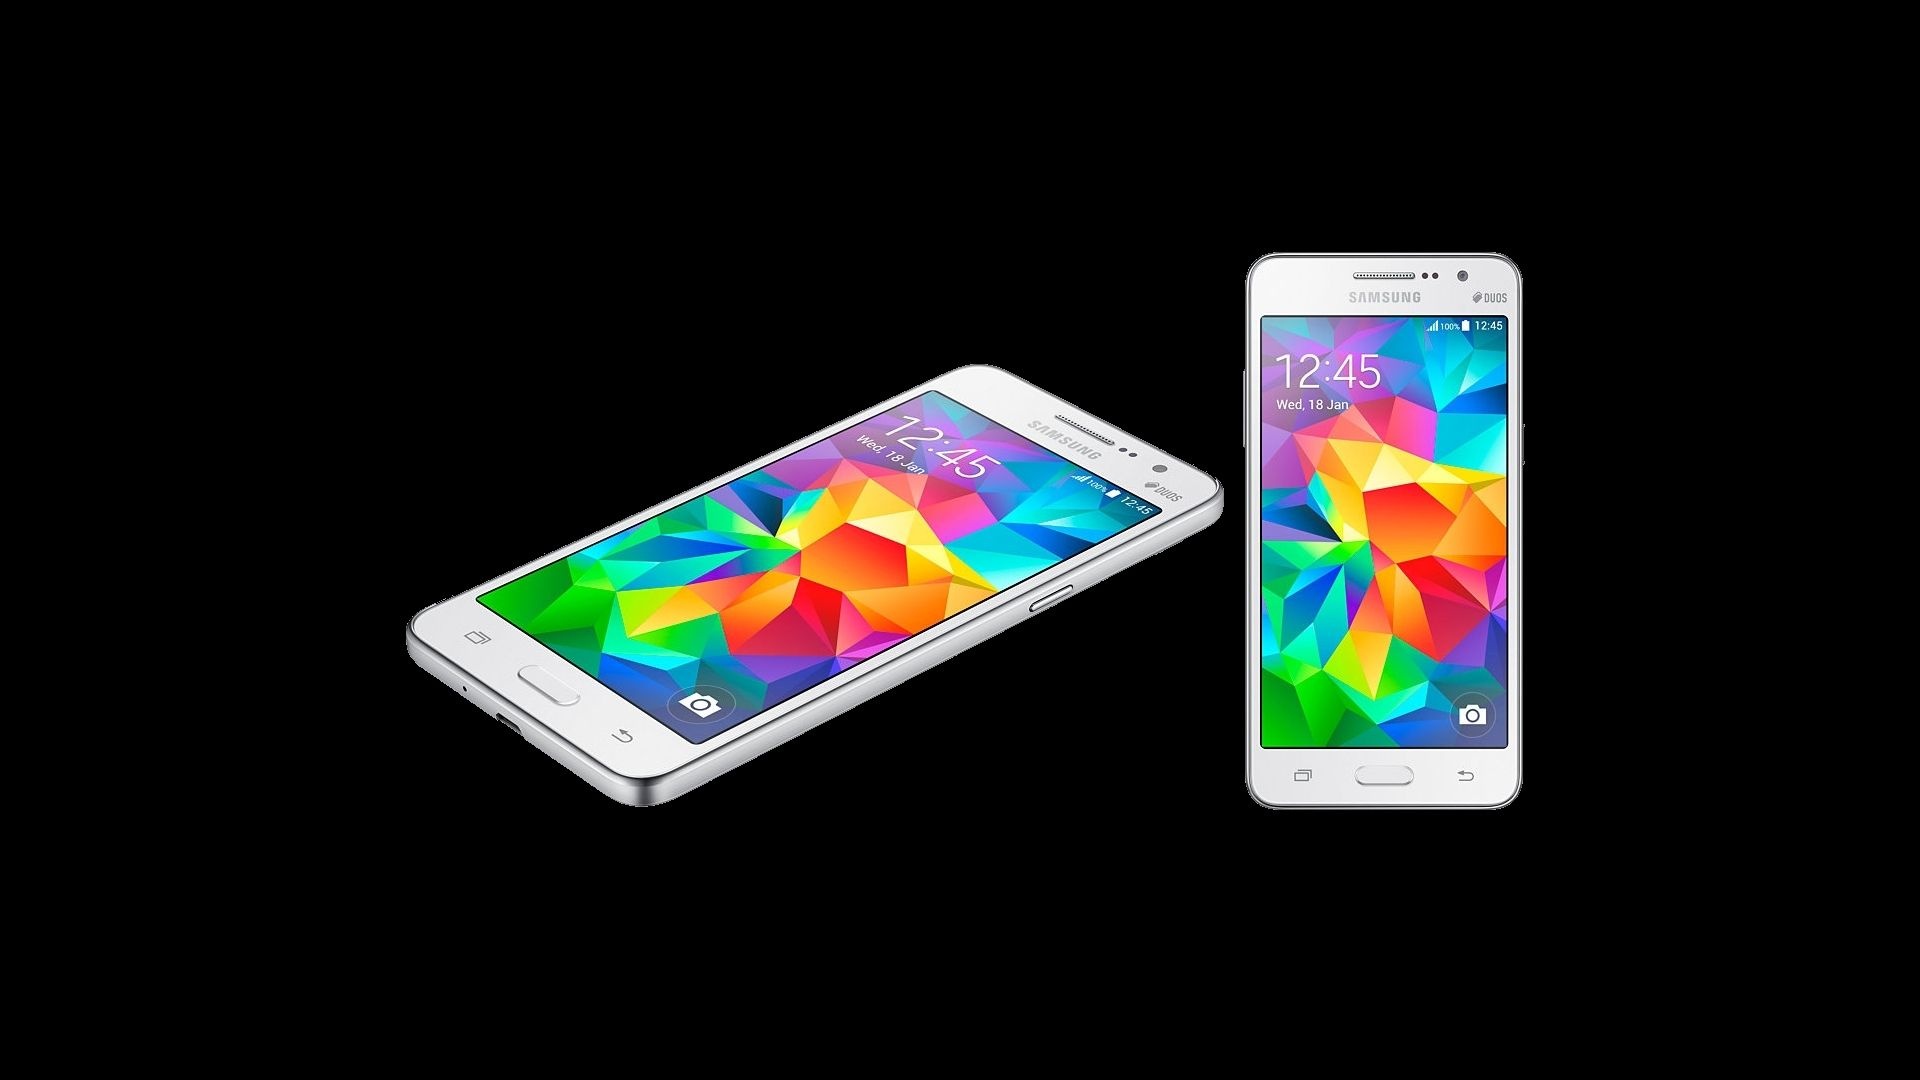 Samsung Hd Wallpapers 1080p: Samsung Galaxy Grand Prime SM G530